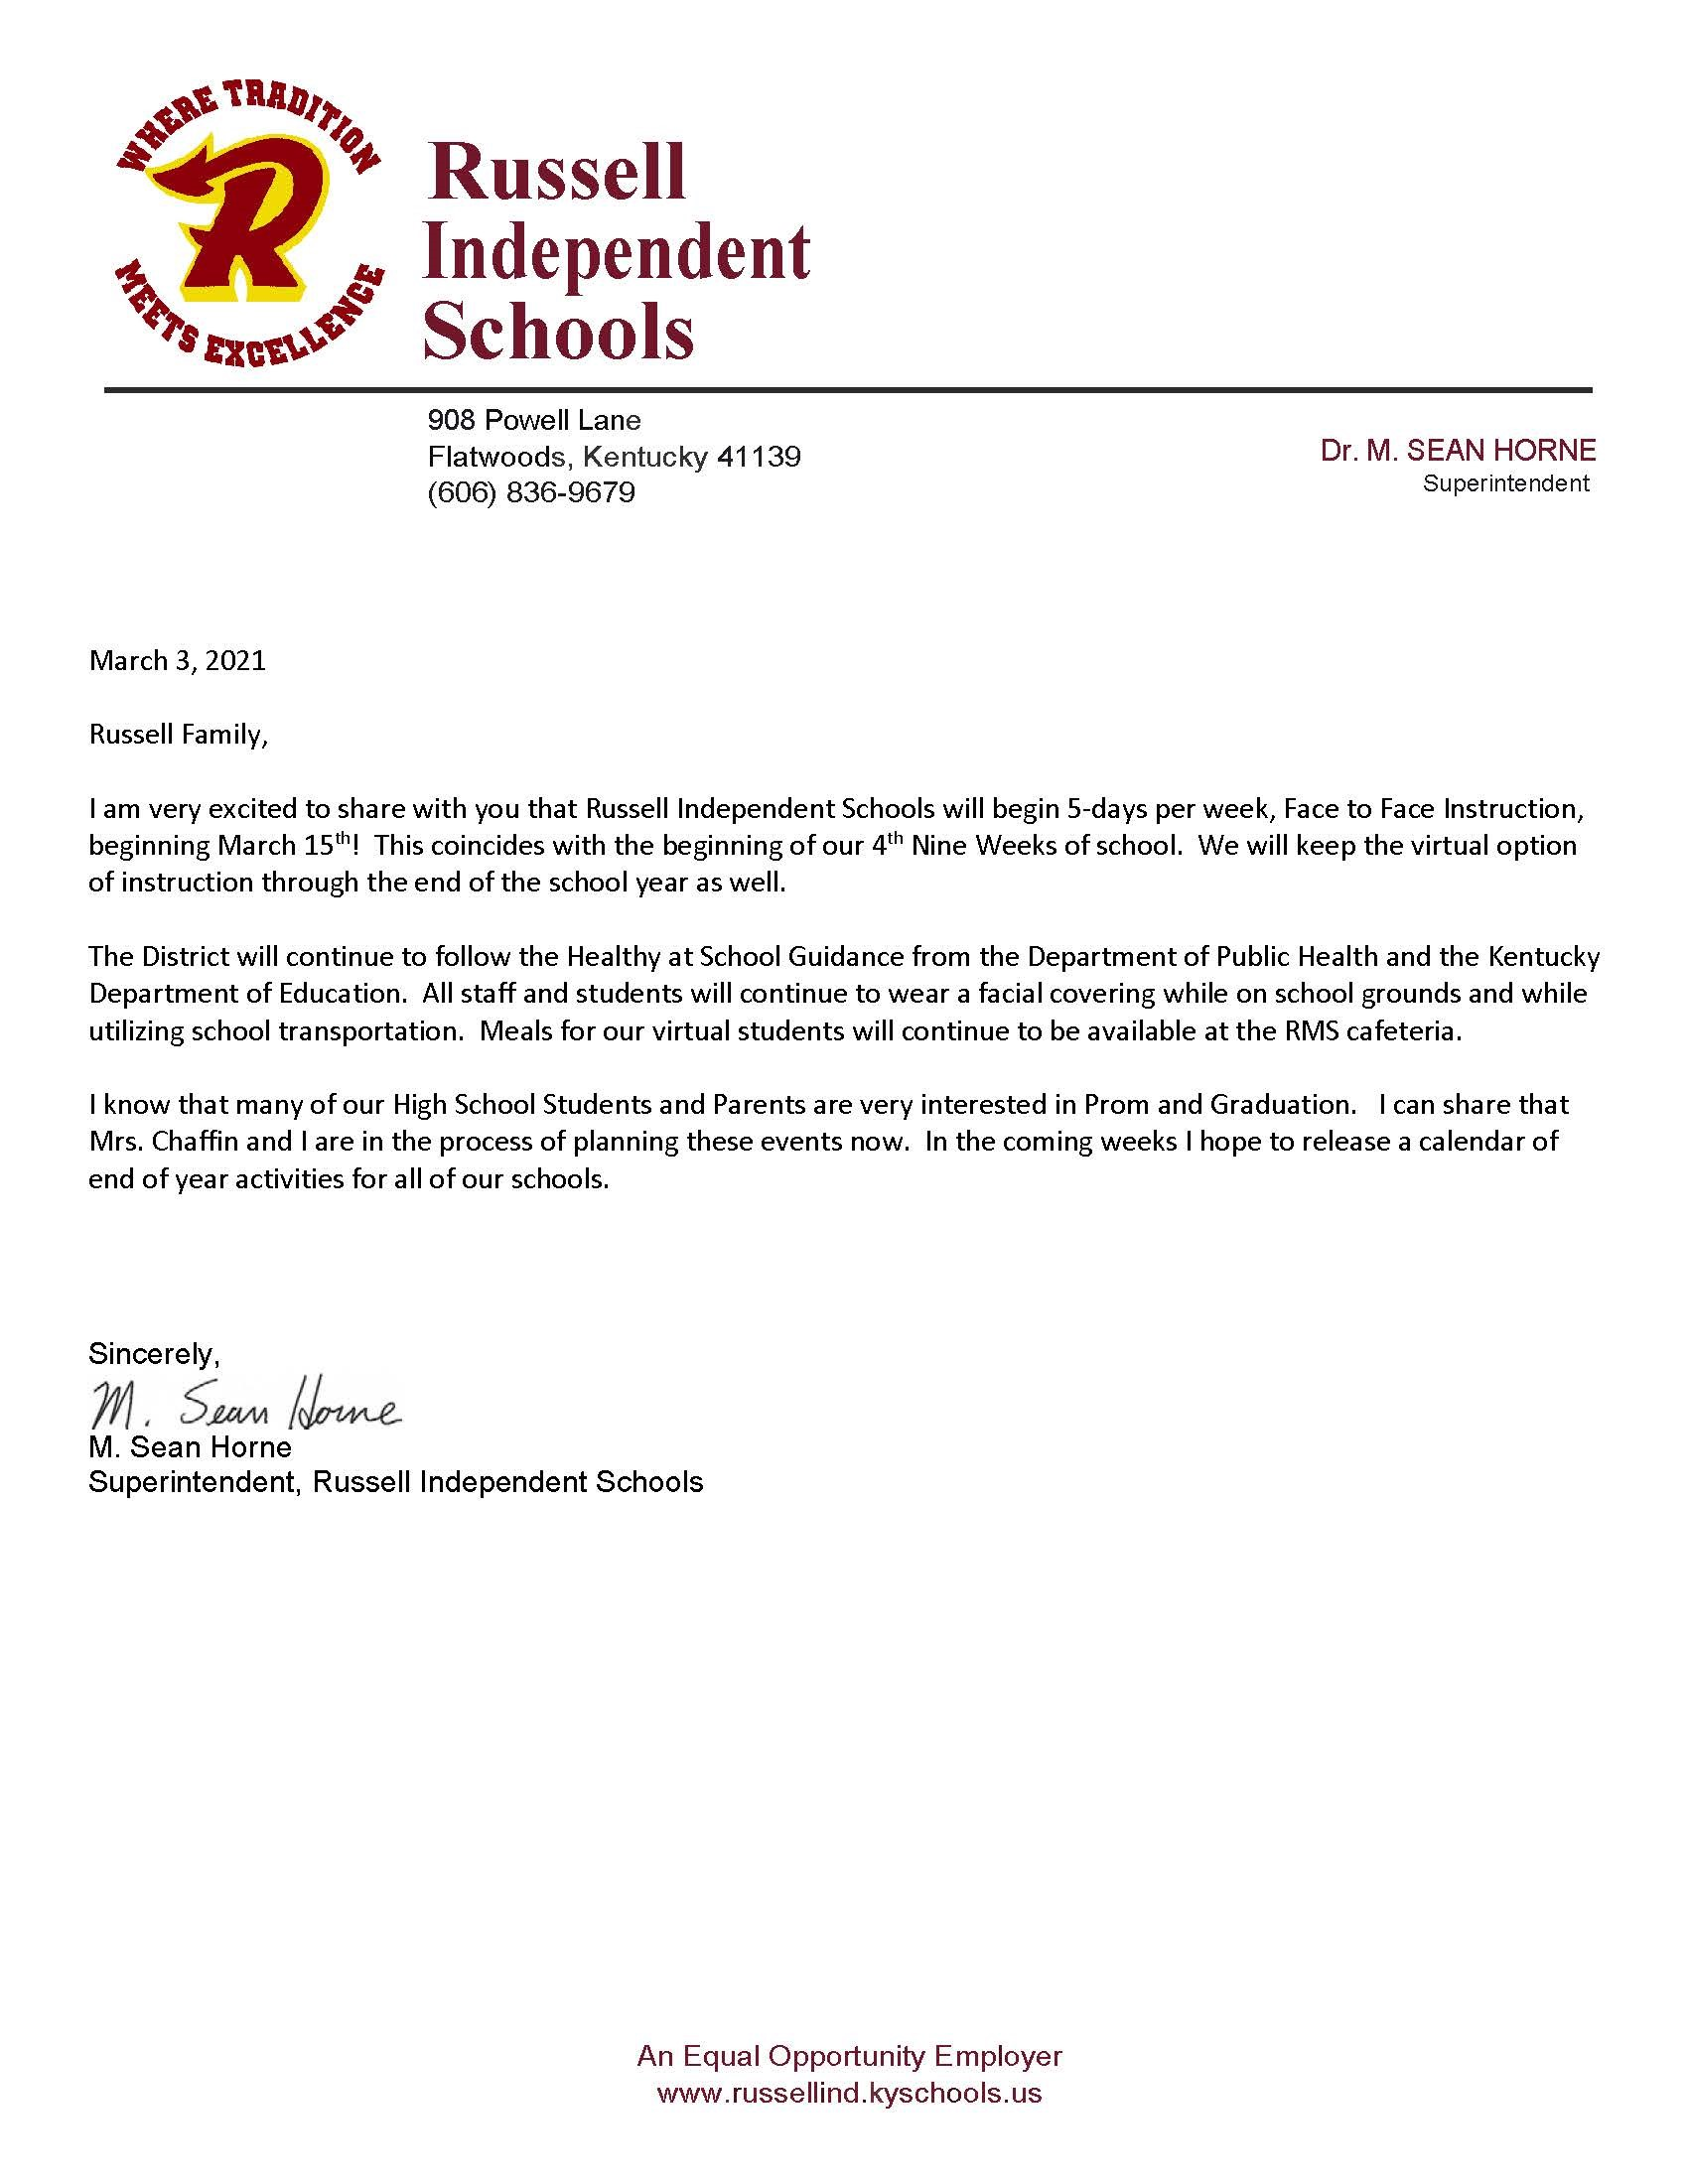 Message from superintendent 3-3-21